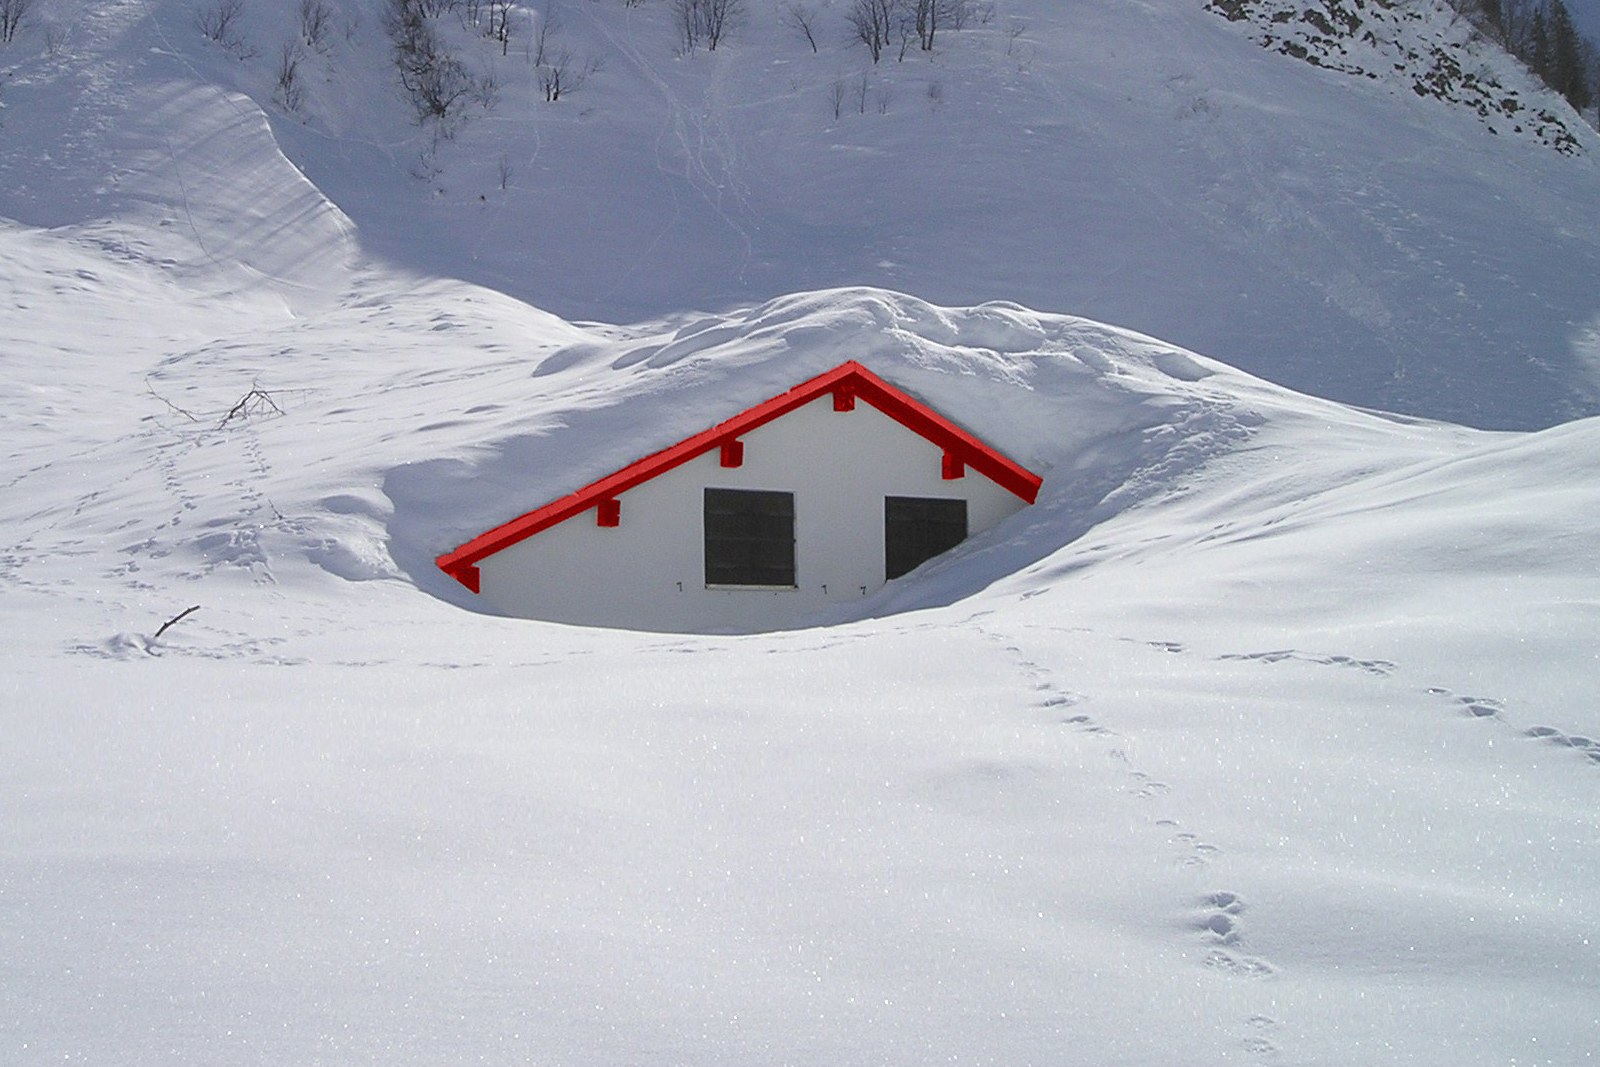 Home buried in snow